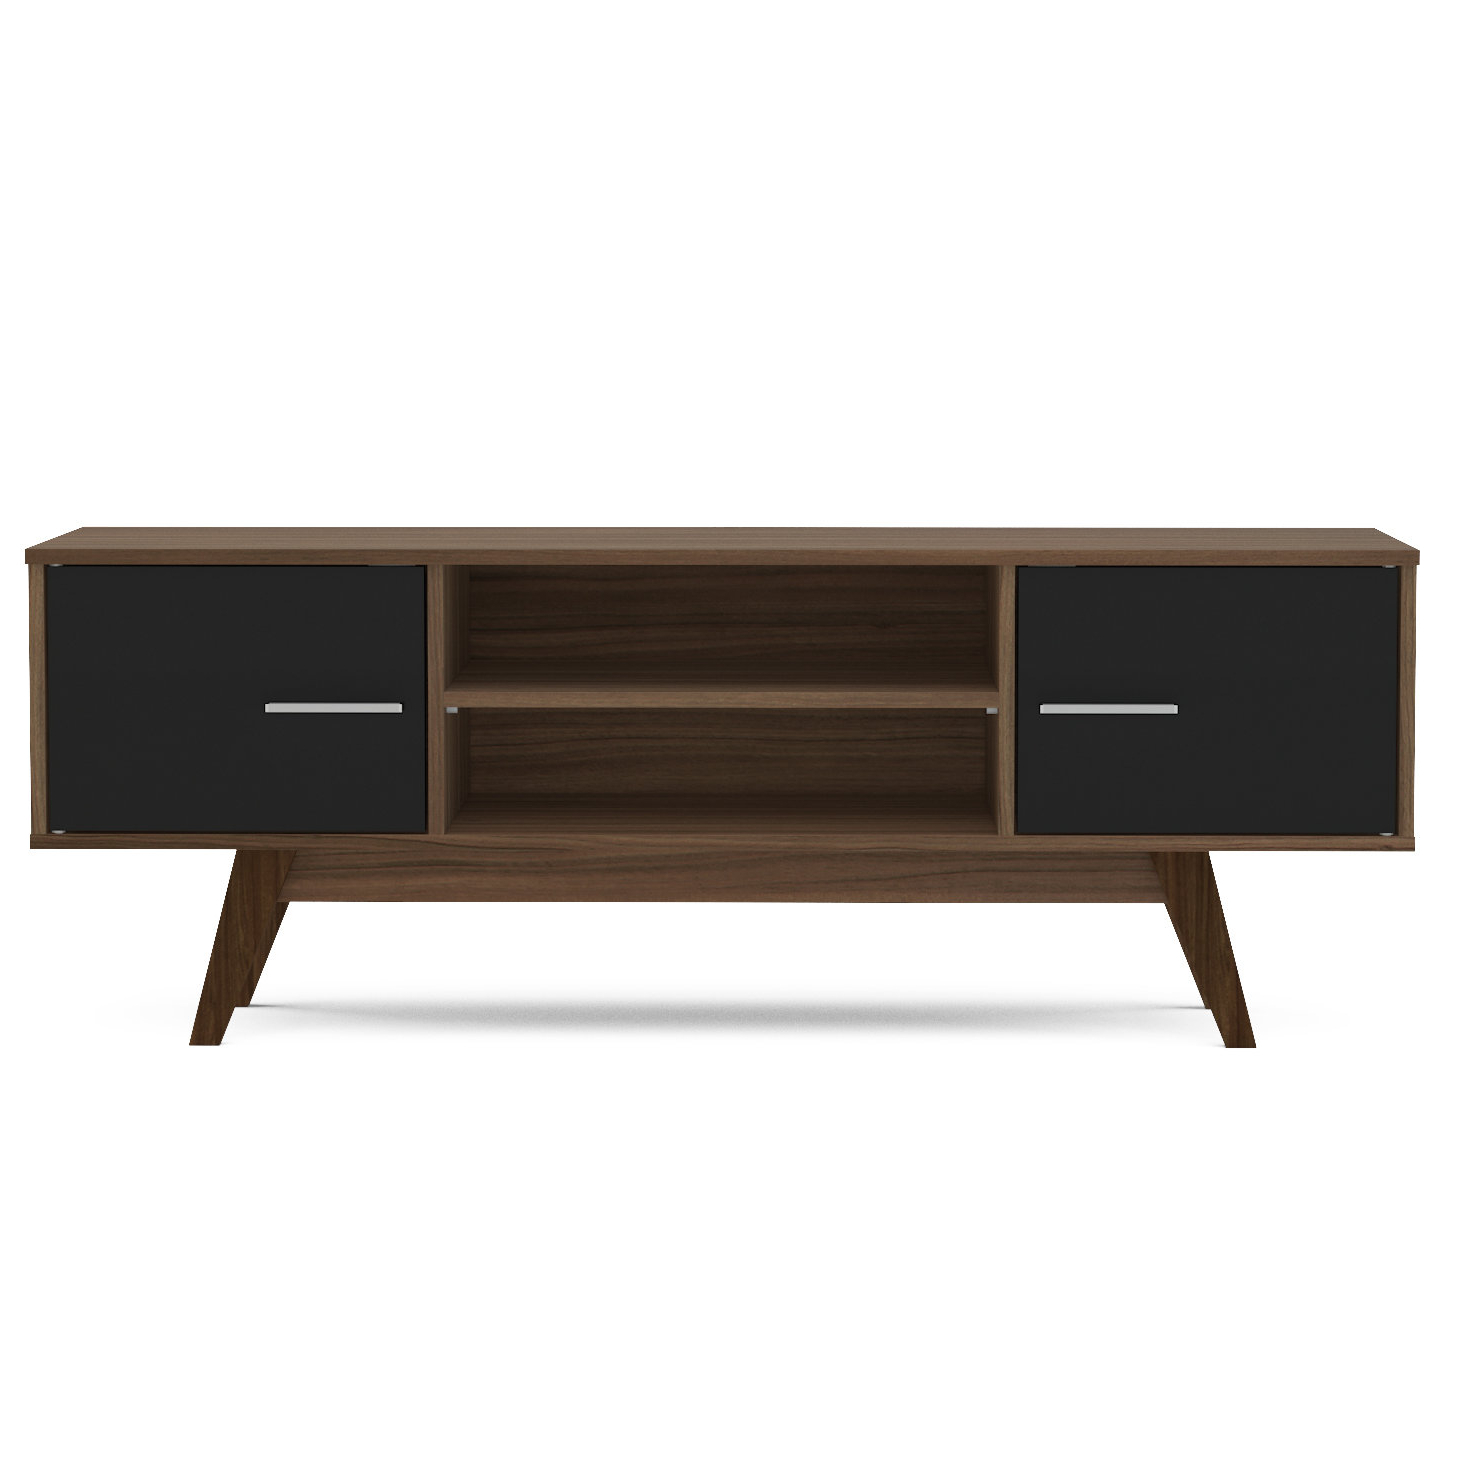 Preferred Retro Tv Stands & Entertainment Units You'll Love (View 18 of 20)